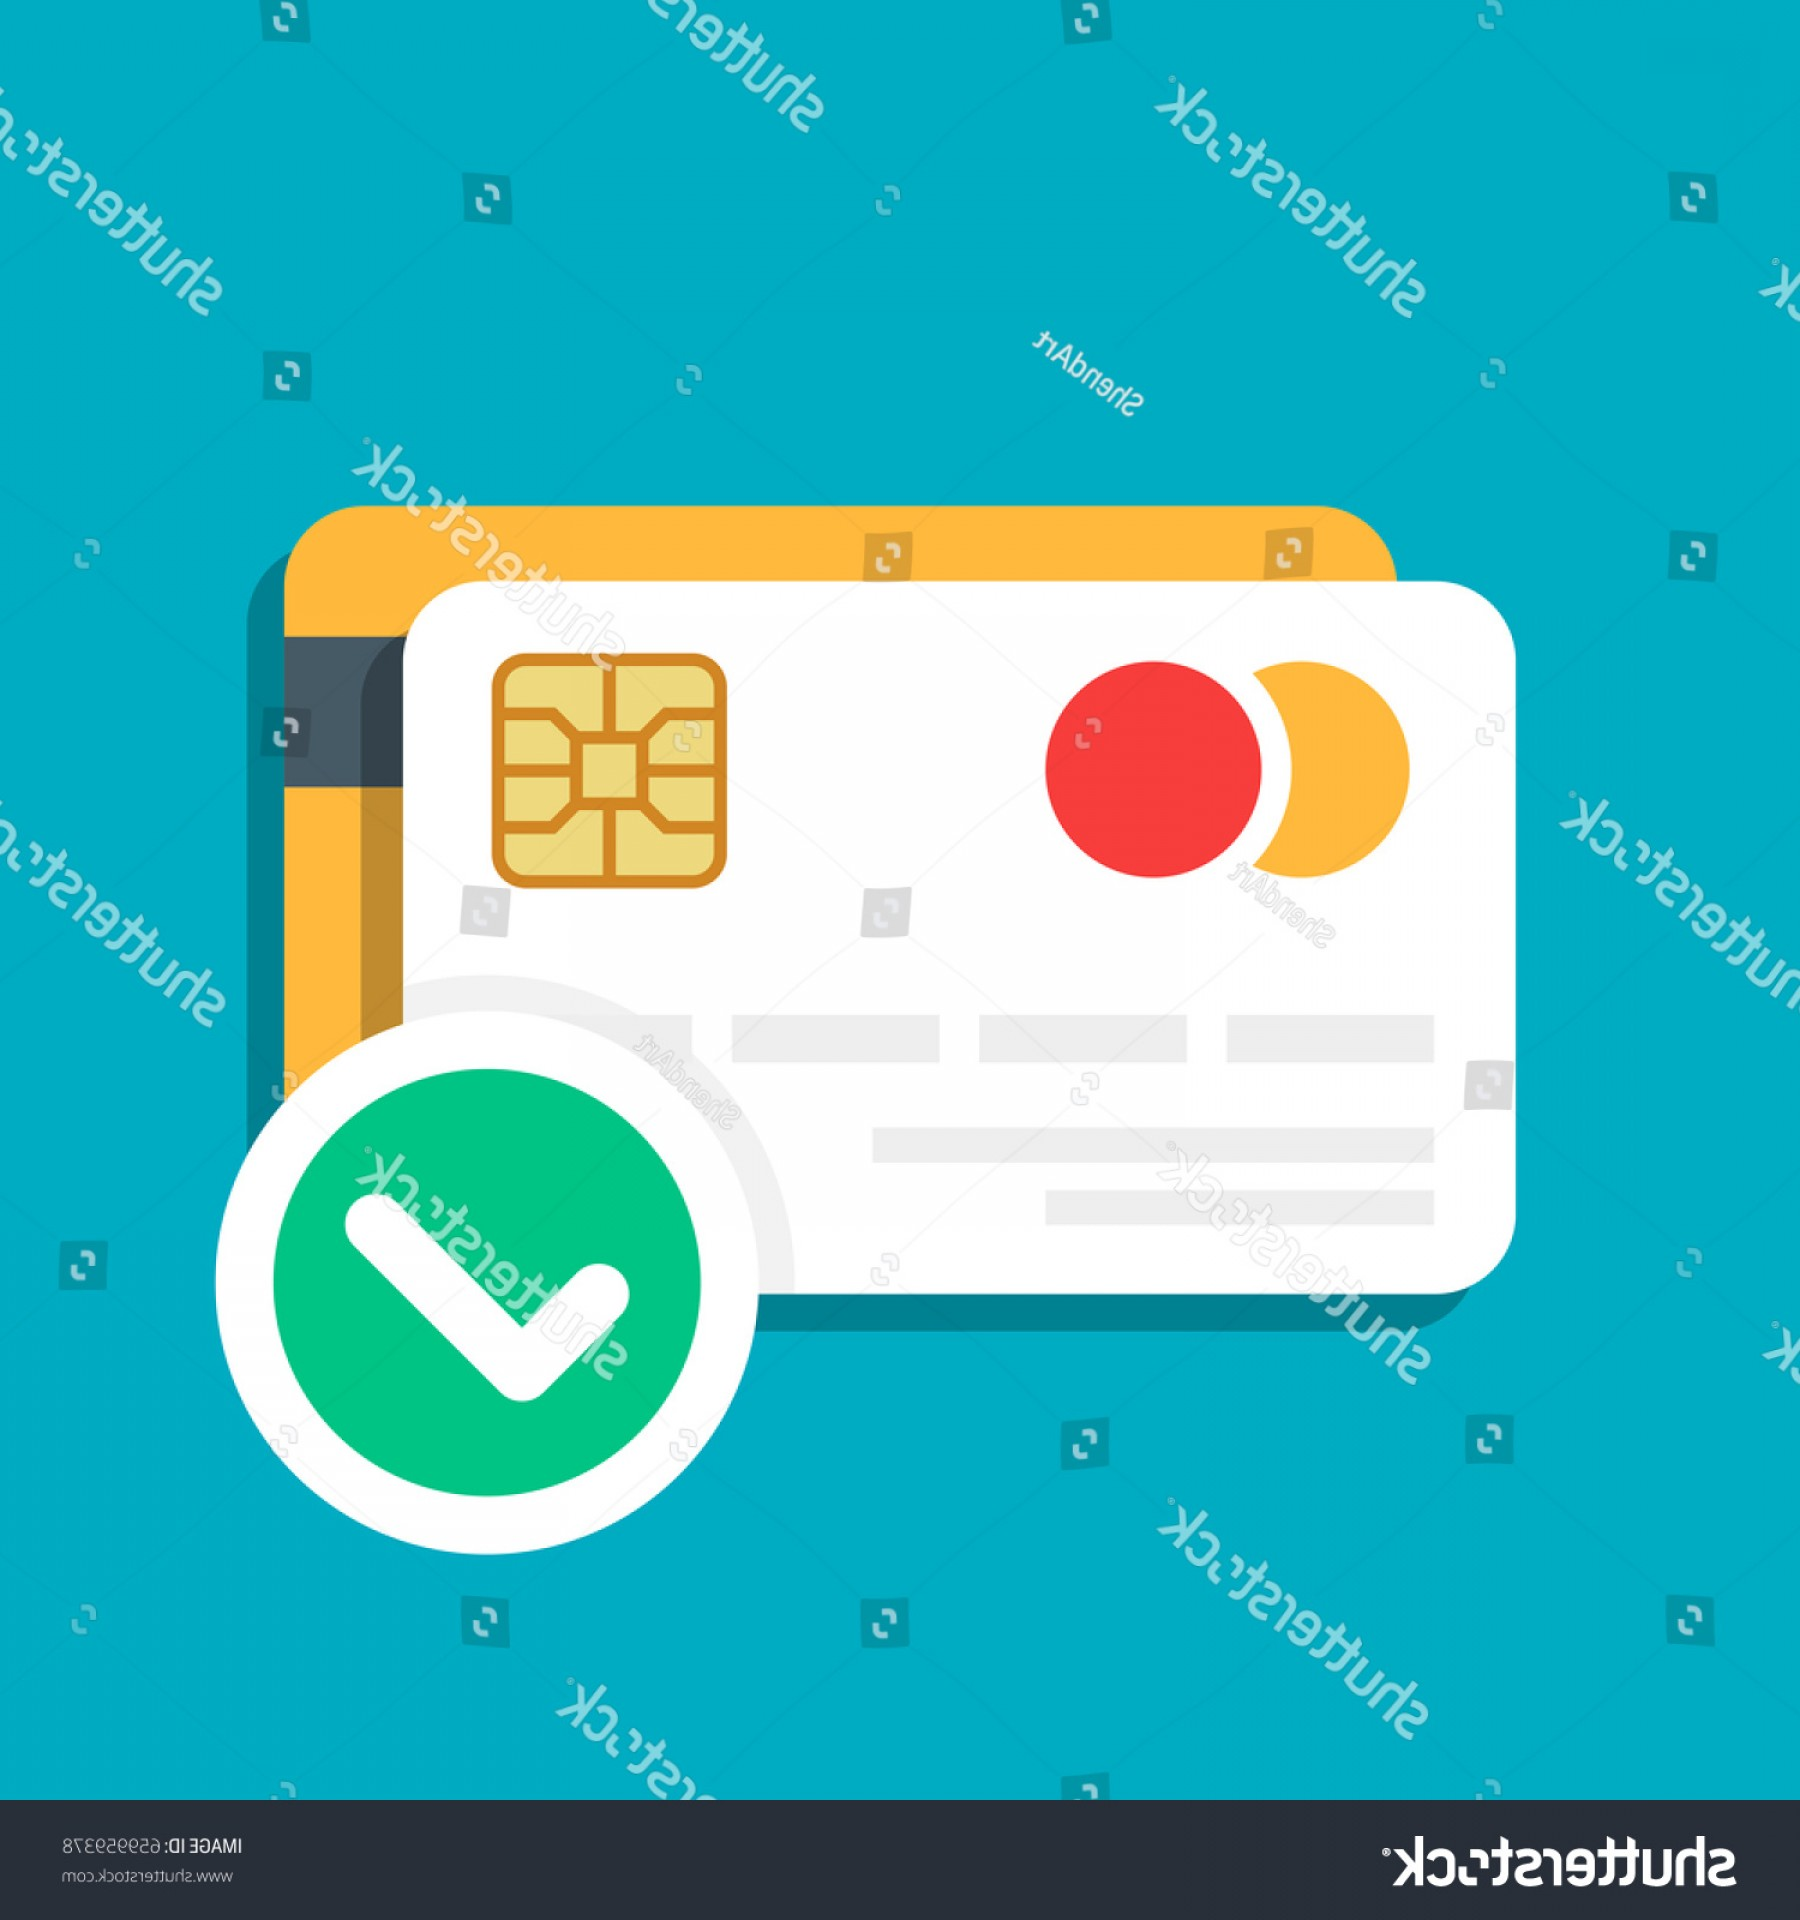 Vector One Debit Check: Plastic Debit Credit Card Payment Approved